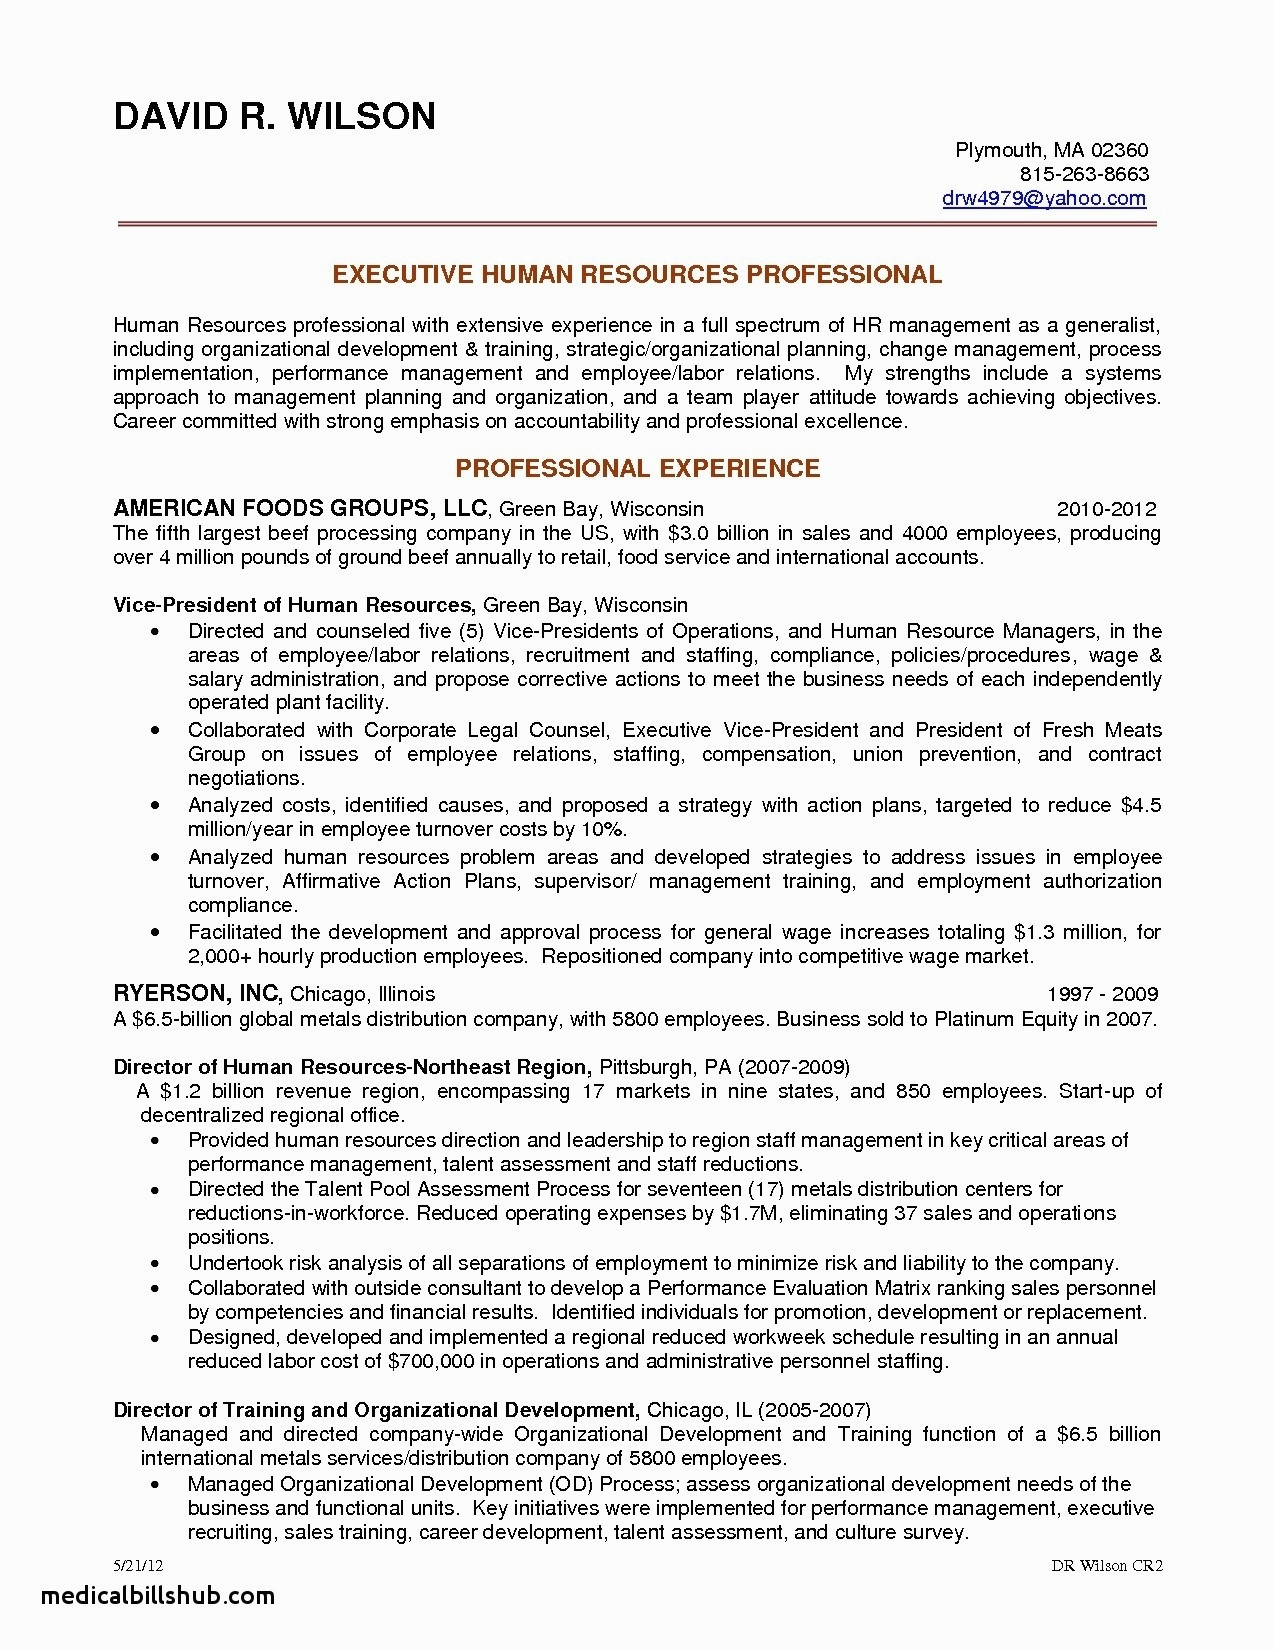 Project Management Resume Samples - Executive Resume Luxury top Resume Summary Examples It Project